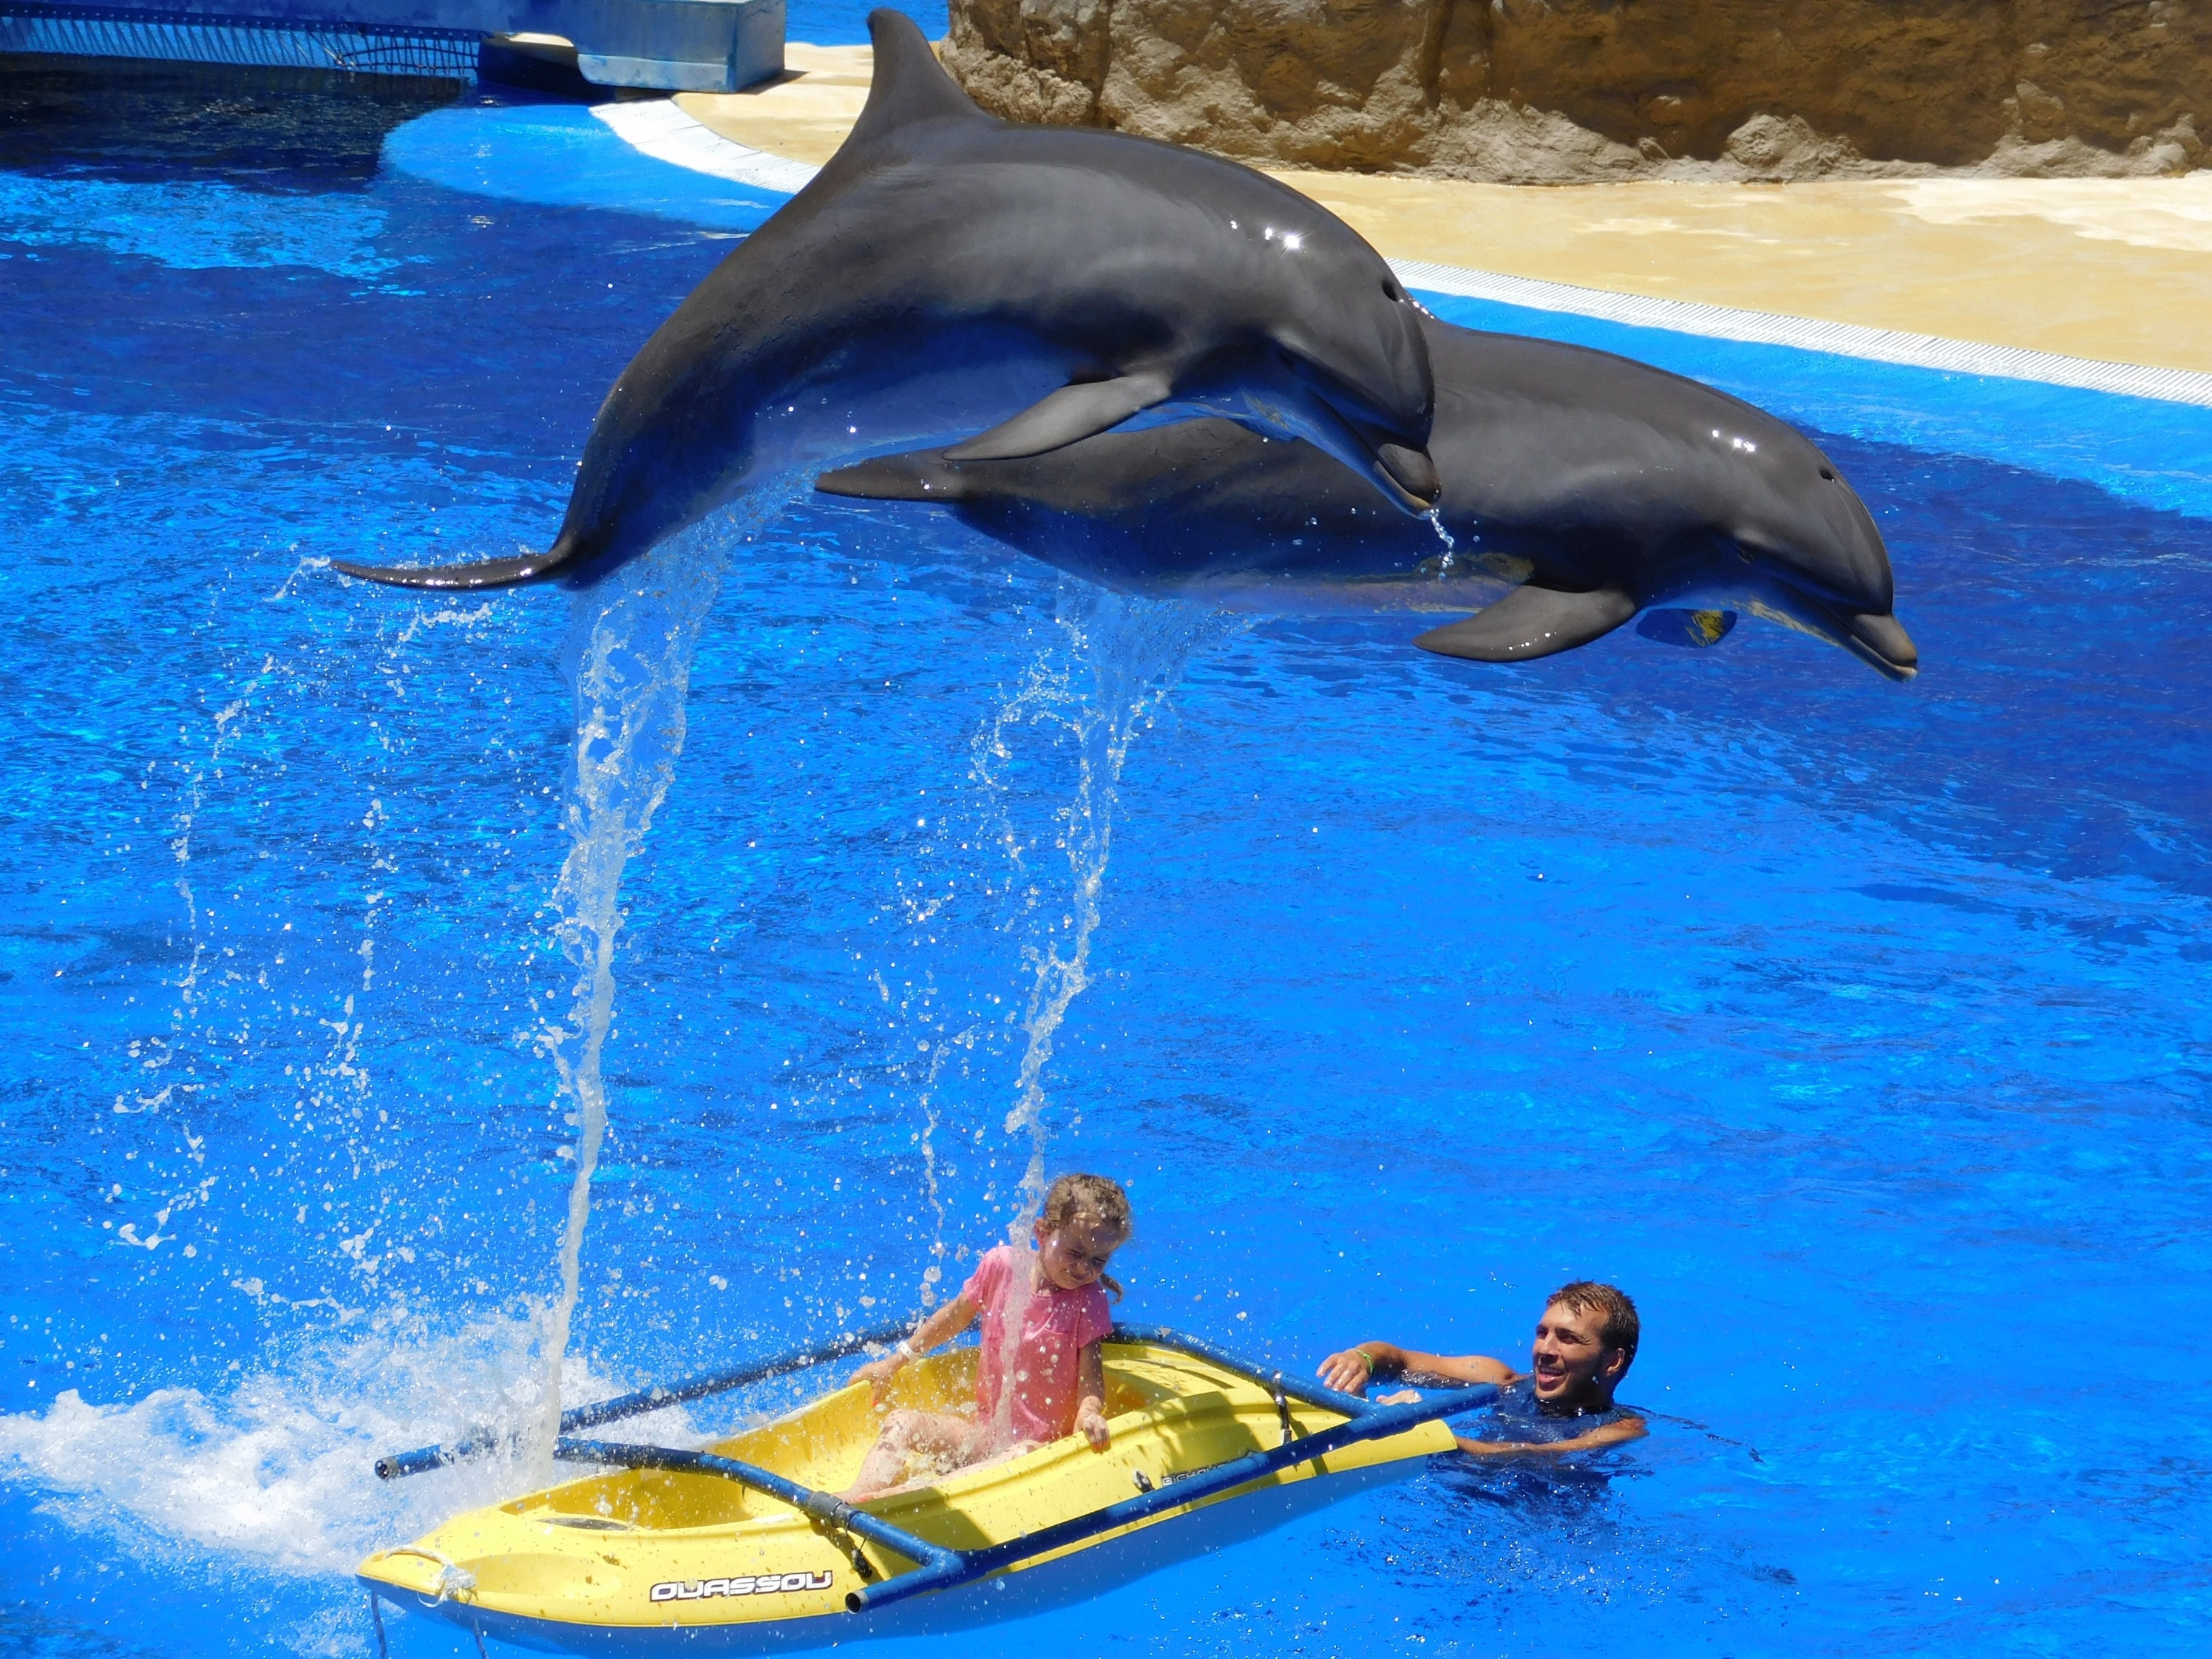 Swimming with Dolphins - World's Cruelest Tourist Attractions